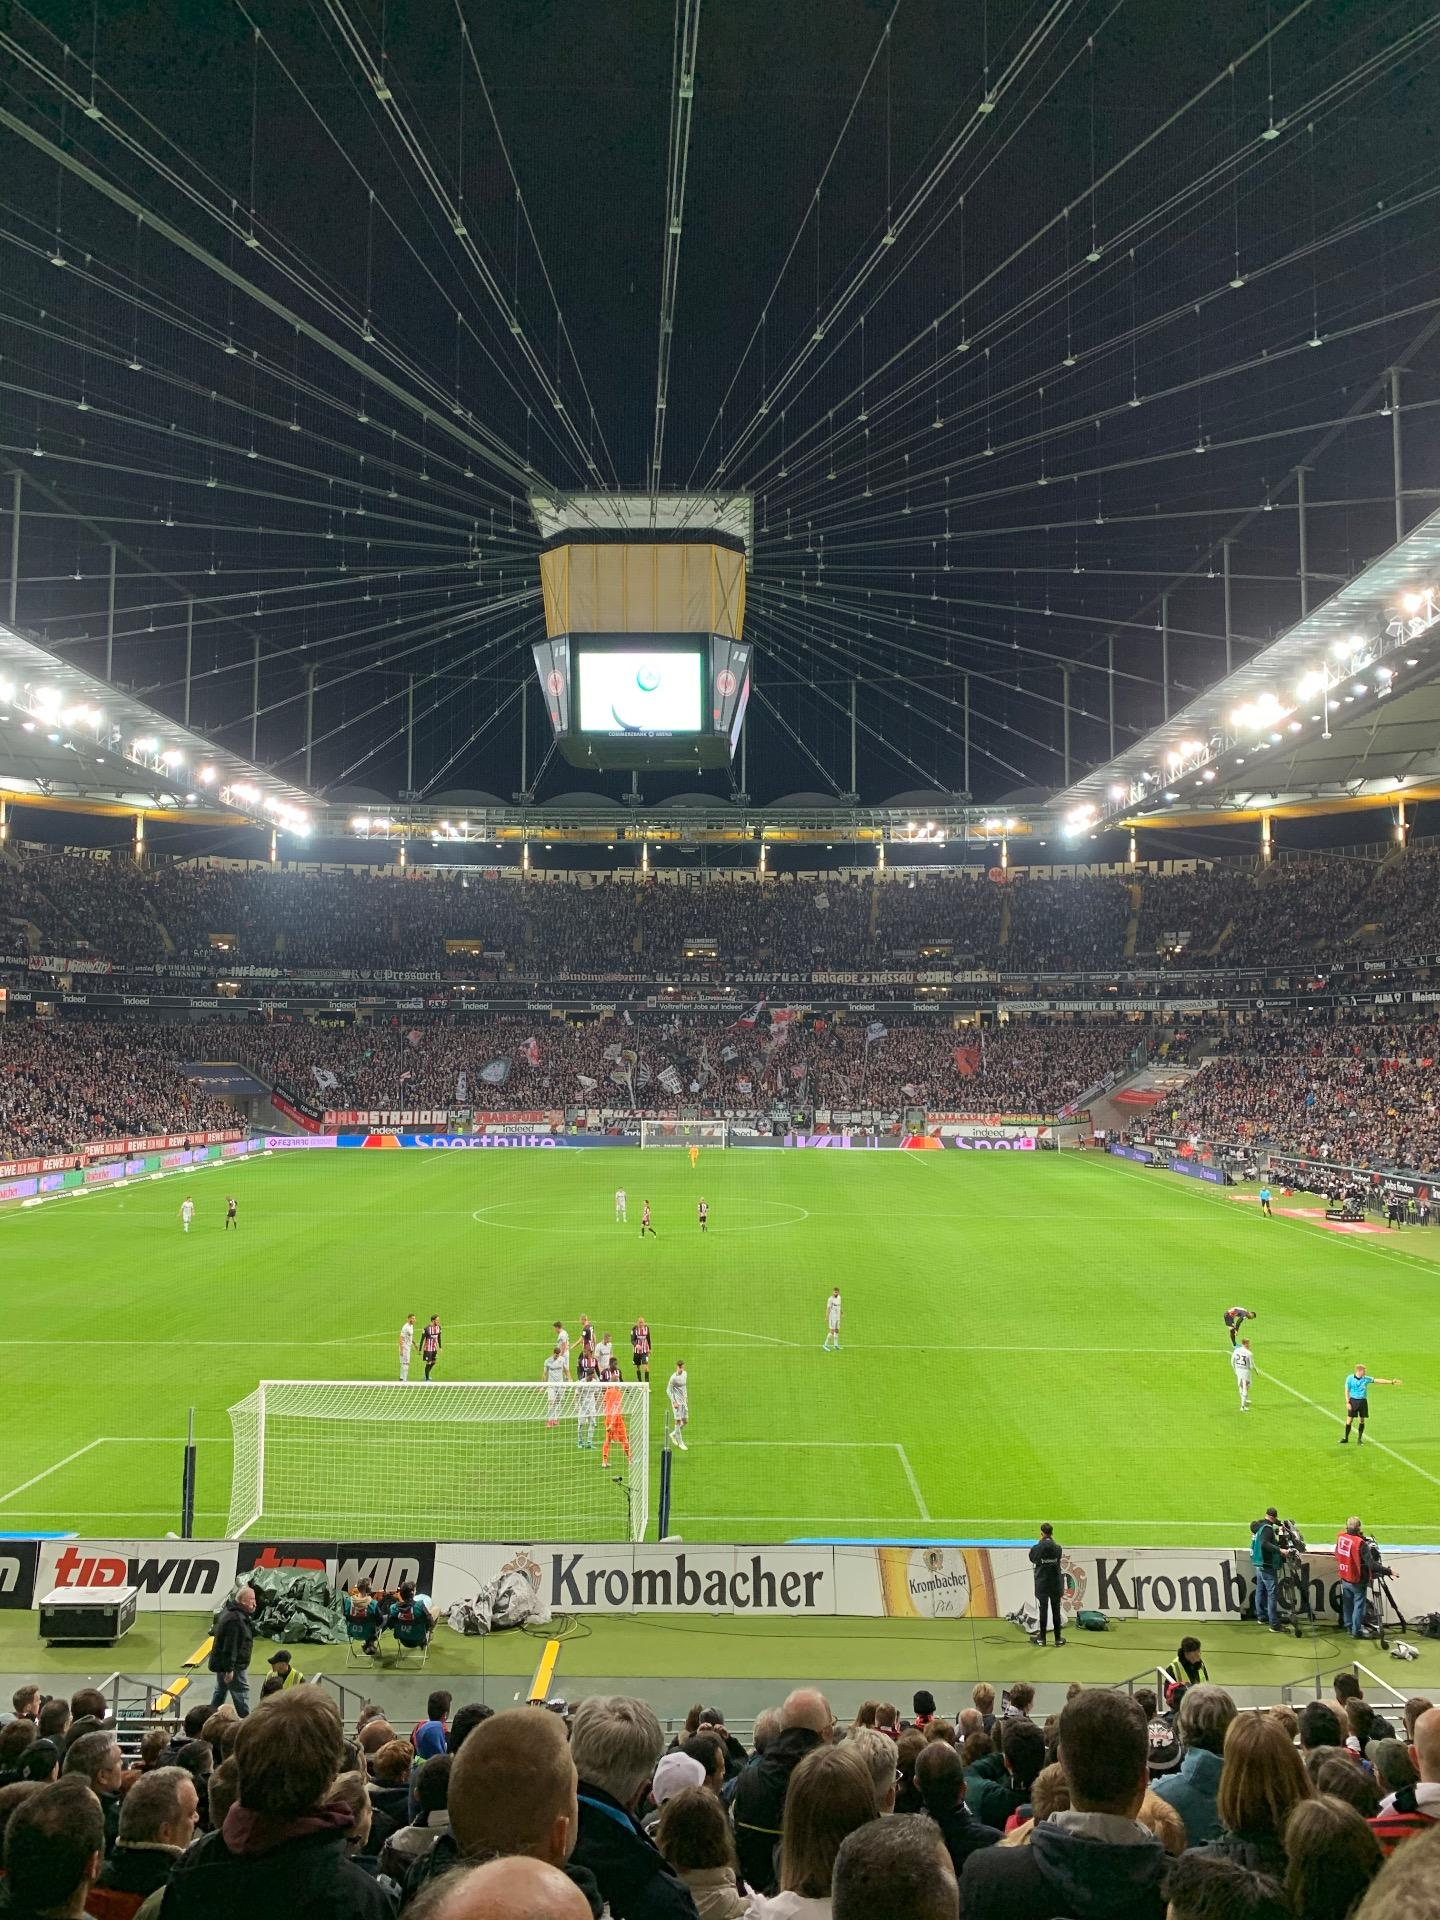 Commerzbank-Arena Section 16A Row 18 Seat 12